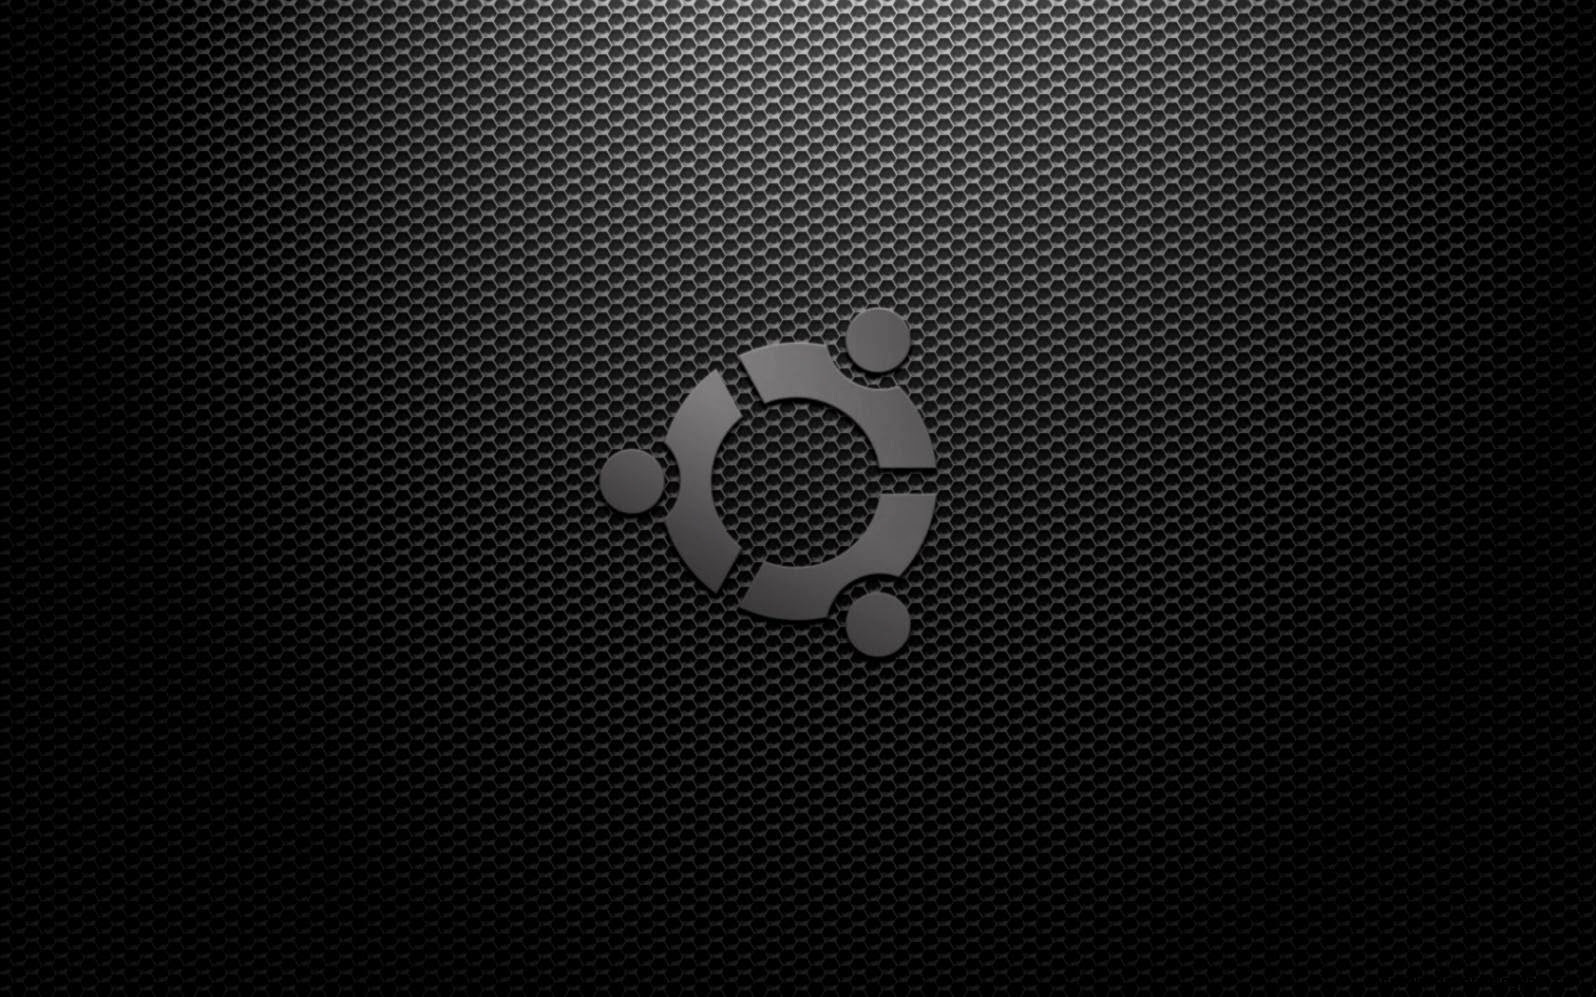 Ubuntu Wallpapers 1920 Desktop Background